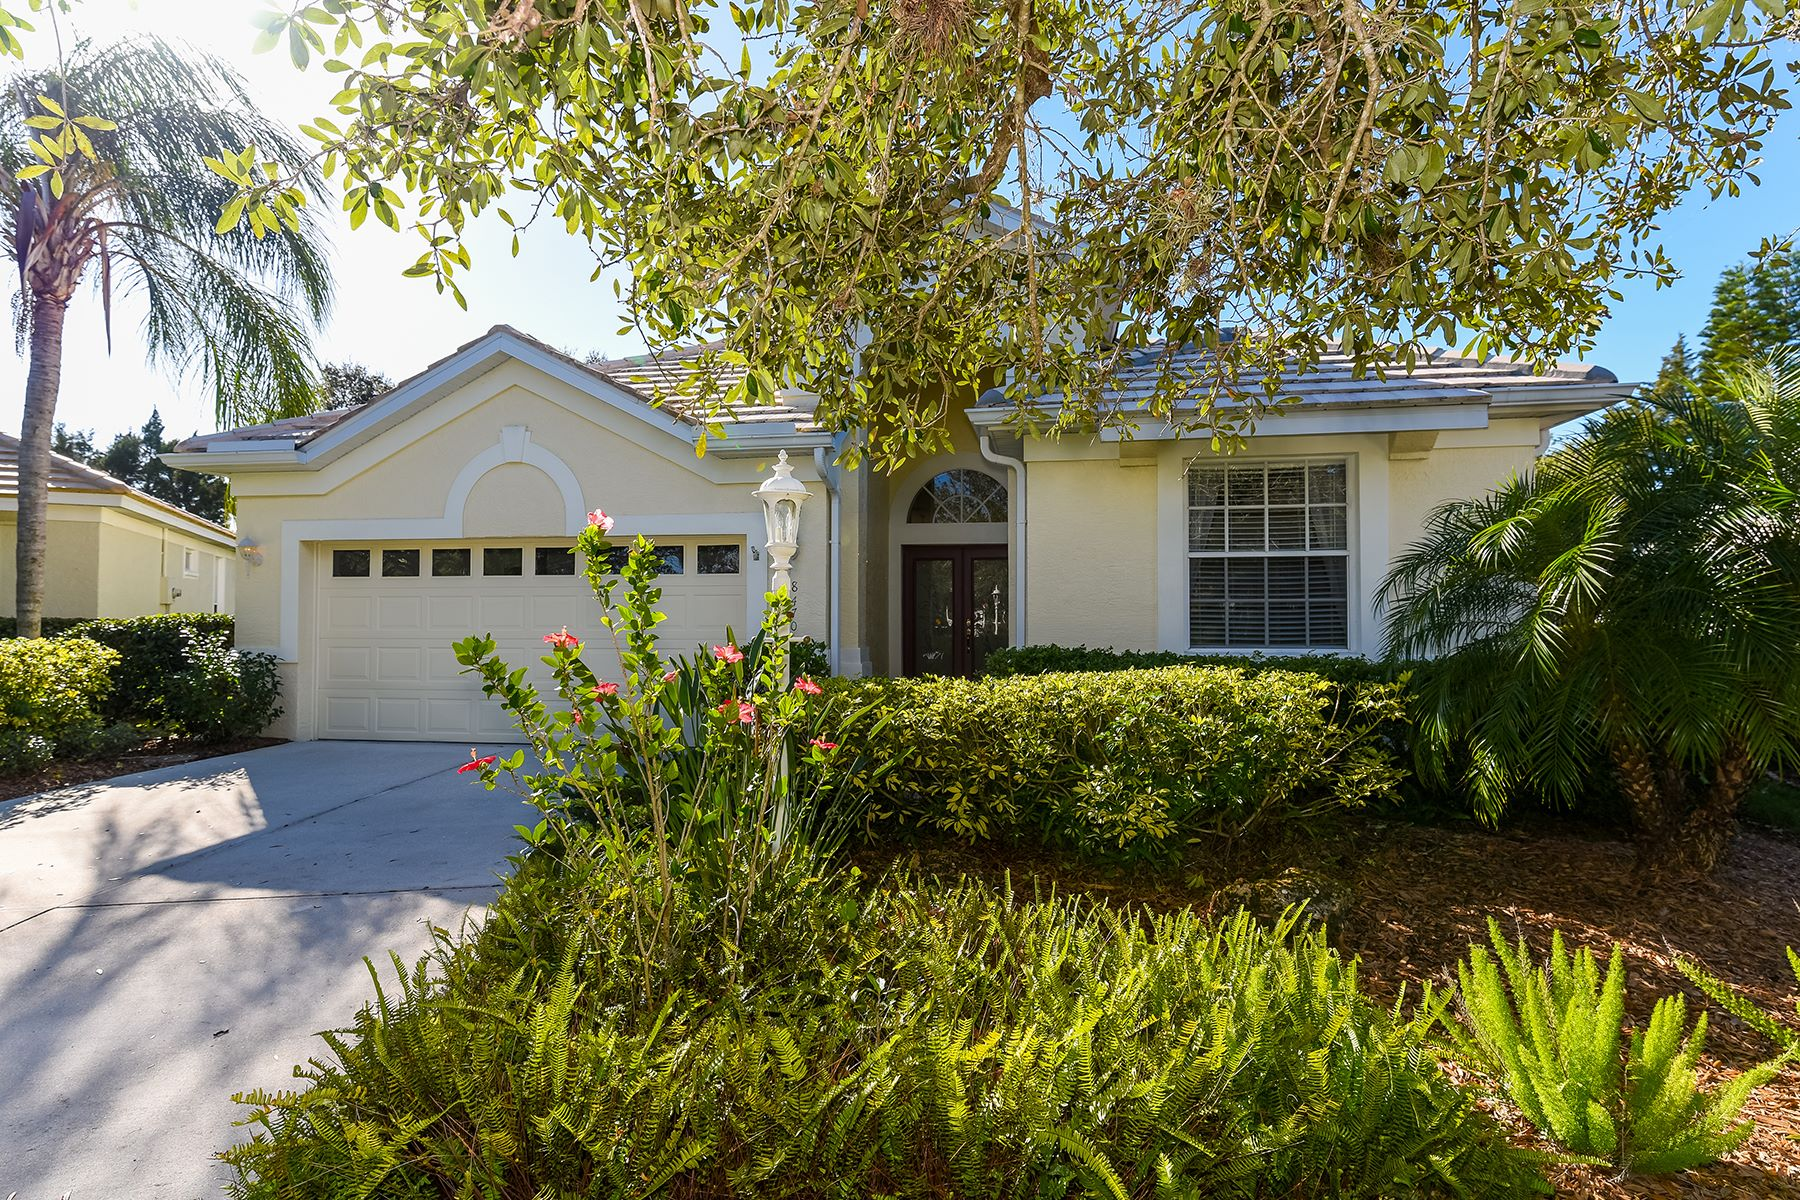 Single Family Home for Sale at EDGEWATER VILLAGE 8470 Idlewood Ct Lakewood Ranch, Florida, 34202 United States